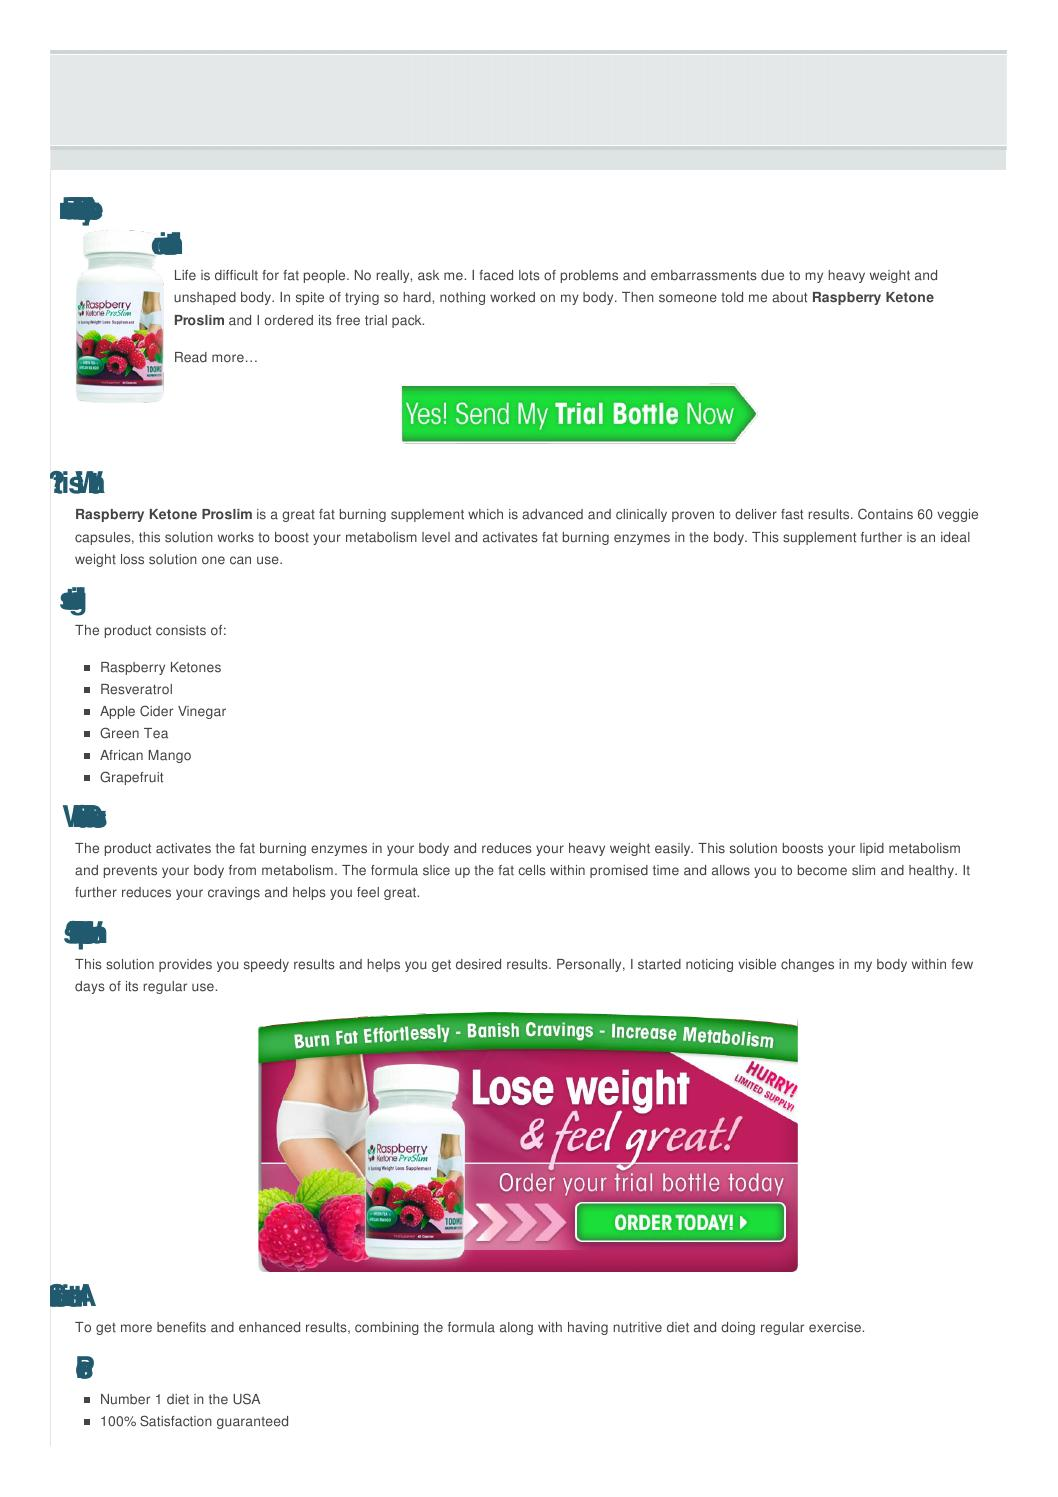 Anti candida diet meal plans picture 9